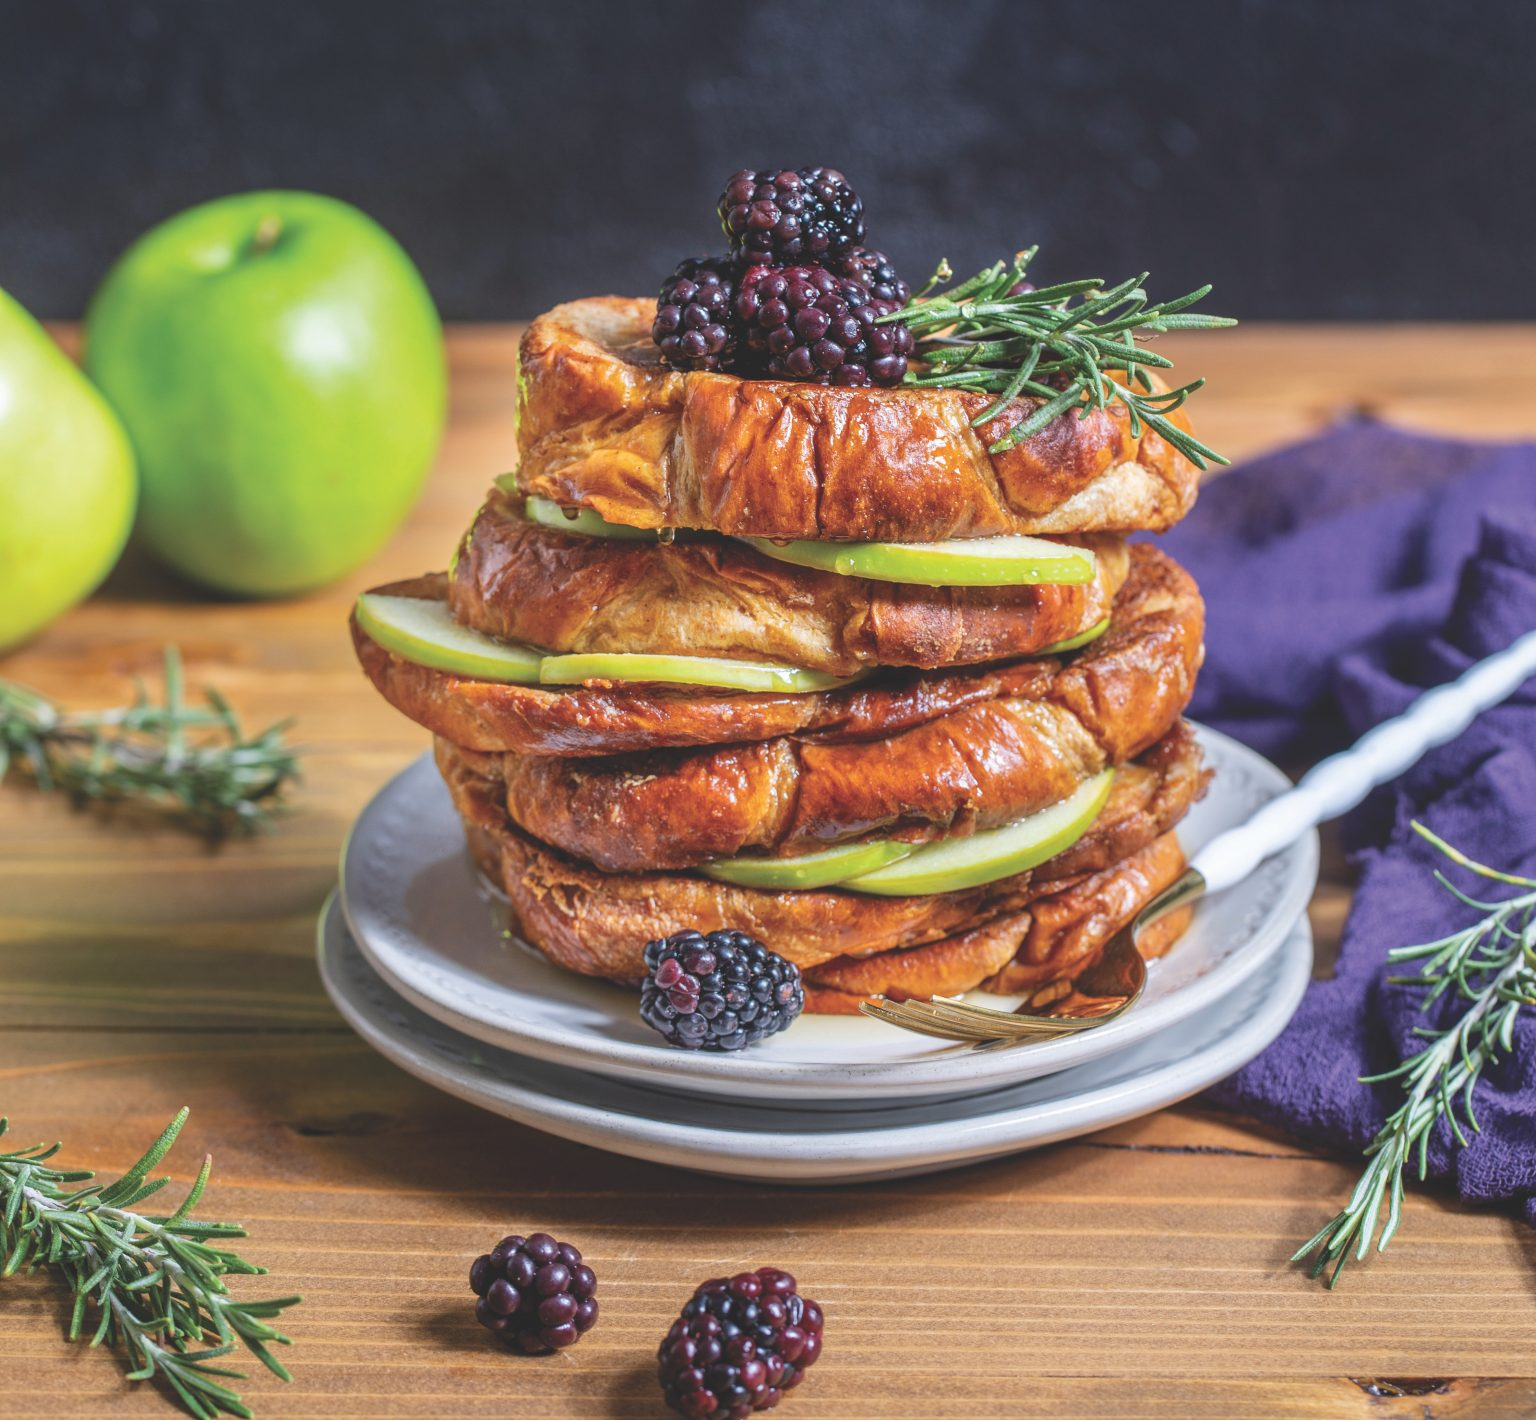 From Apple Blackberry Brioche French Toast to Chatpata Aloo Salad: Our Top Eight Vegan Recipes of the Day!